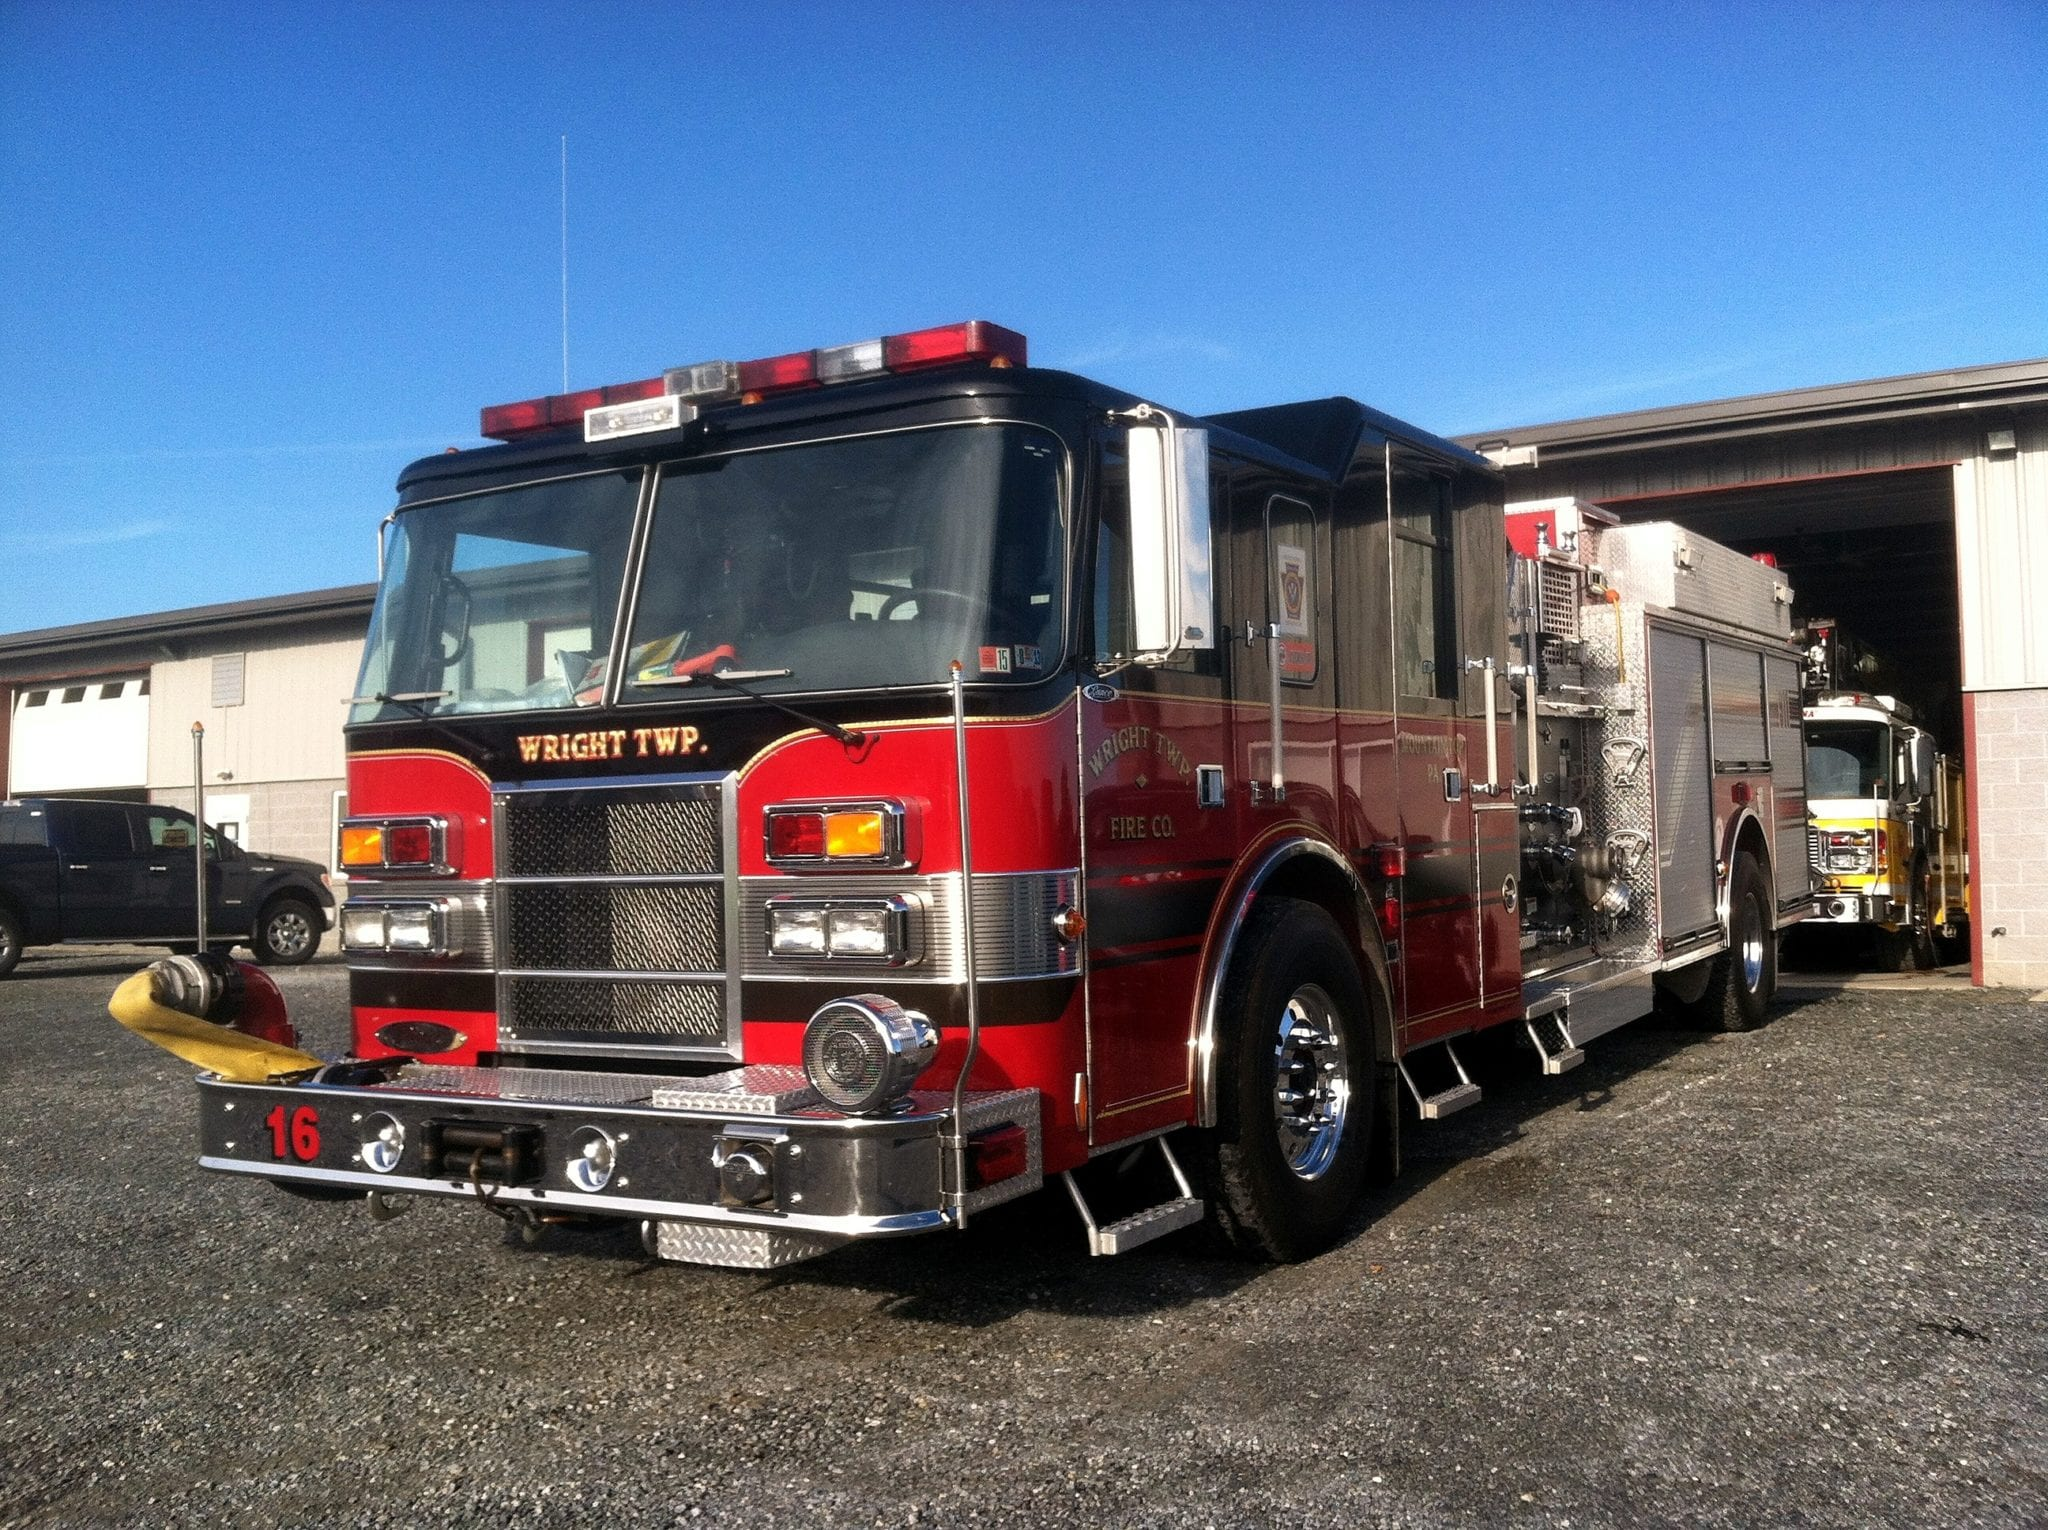 4 Guys Fire Truck Wiring Diagram Library Of Wiring Diagrams \u2022 1971  Chevy Truck Ignition Switch Wiring Diagram Pierce Fire Truck Wiring Diagrams